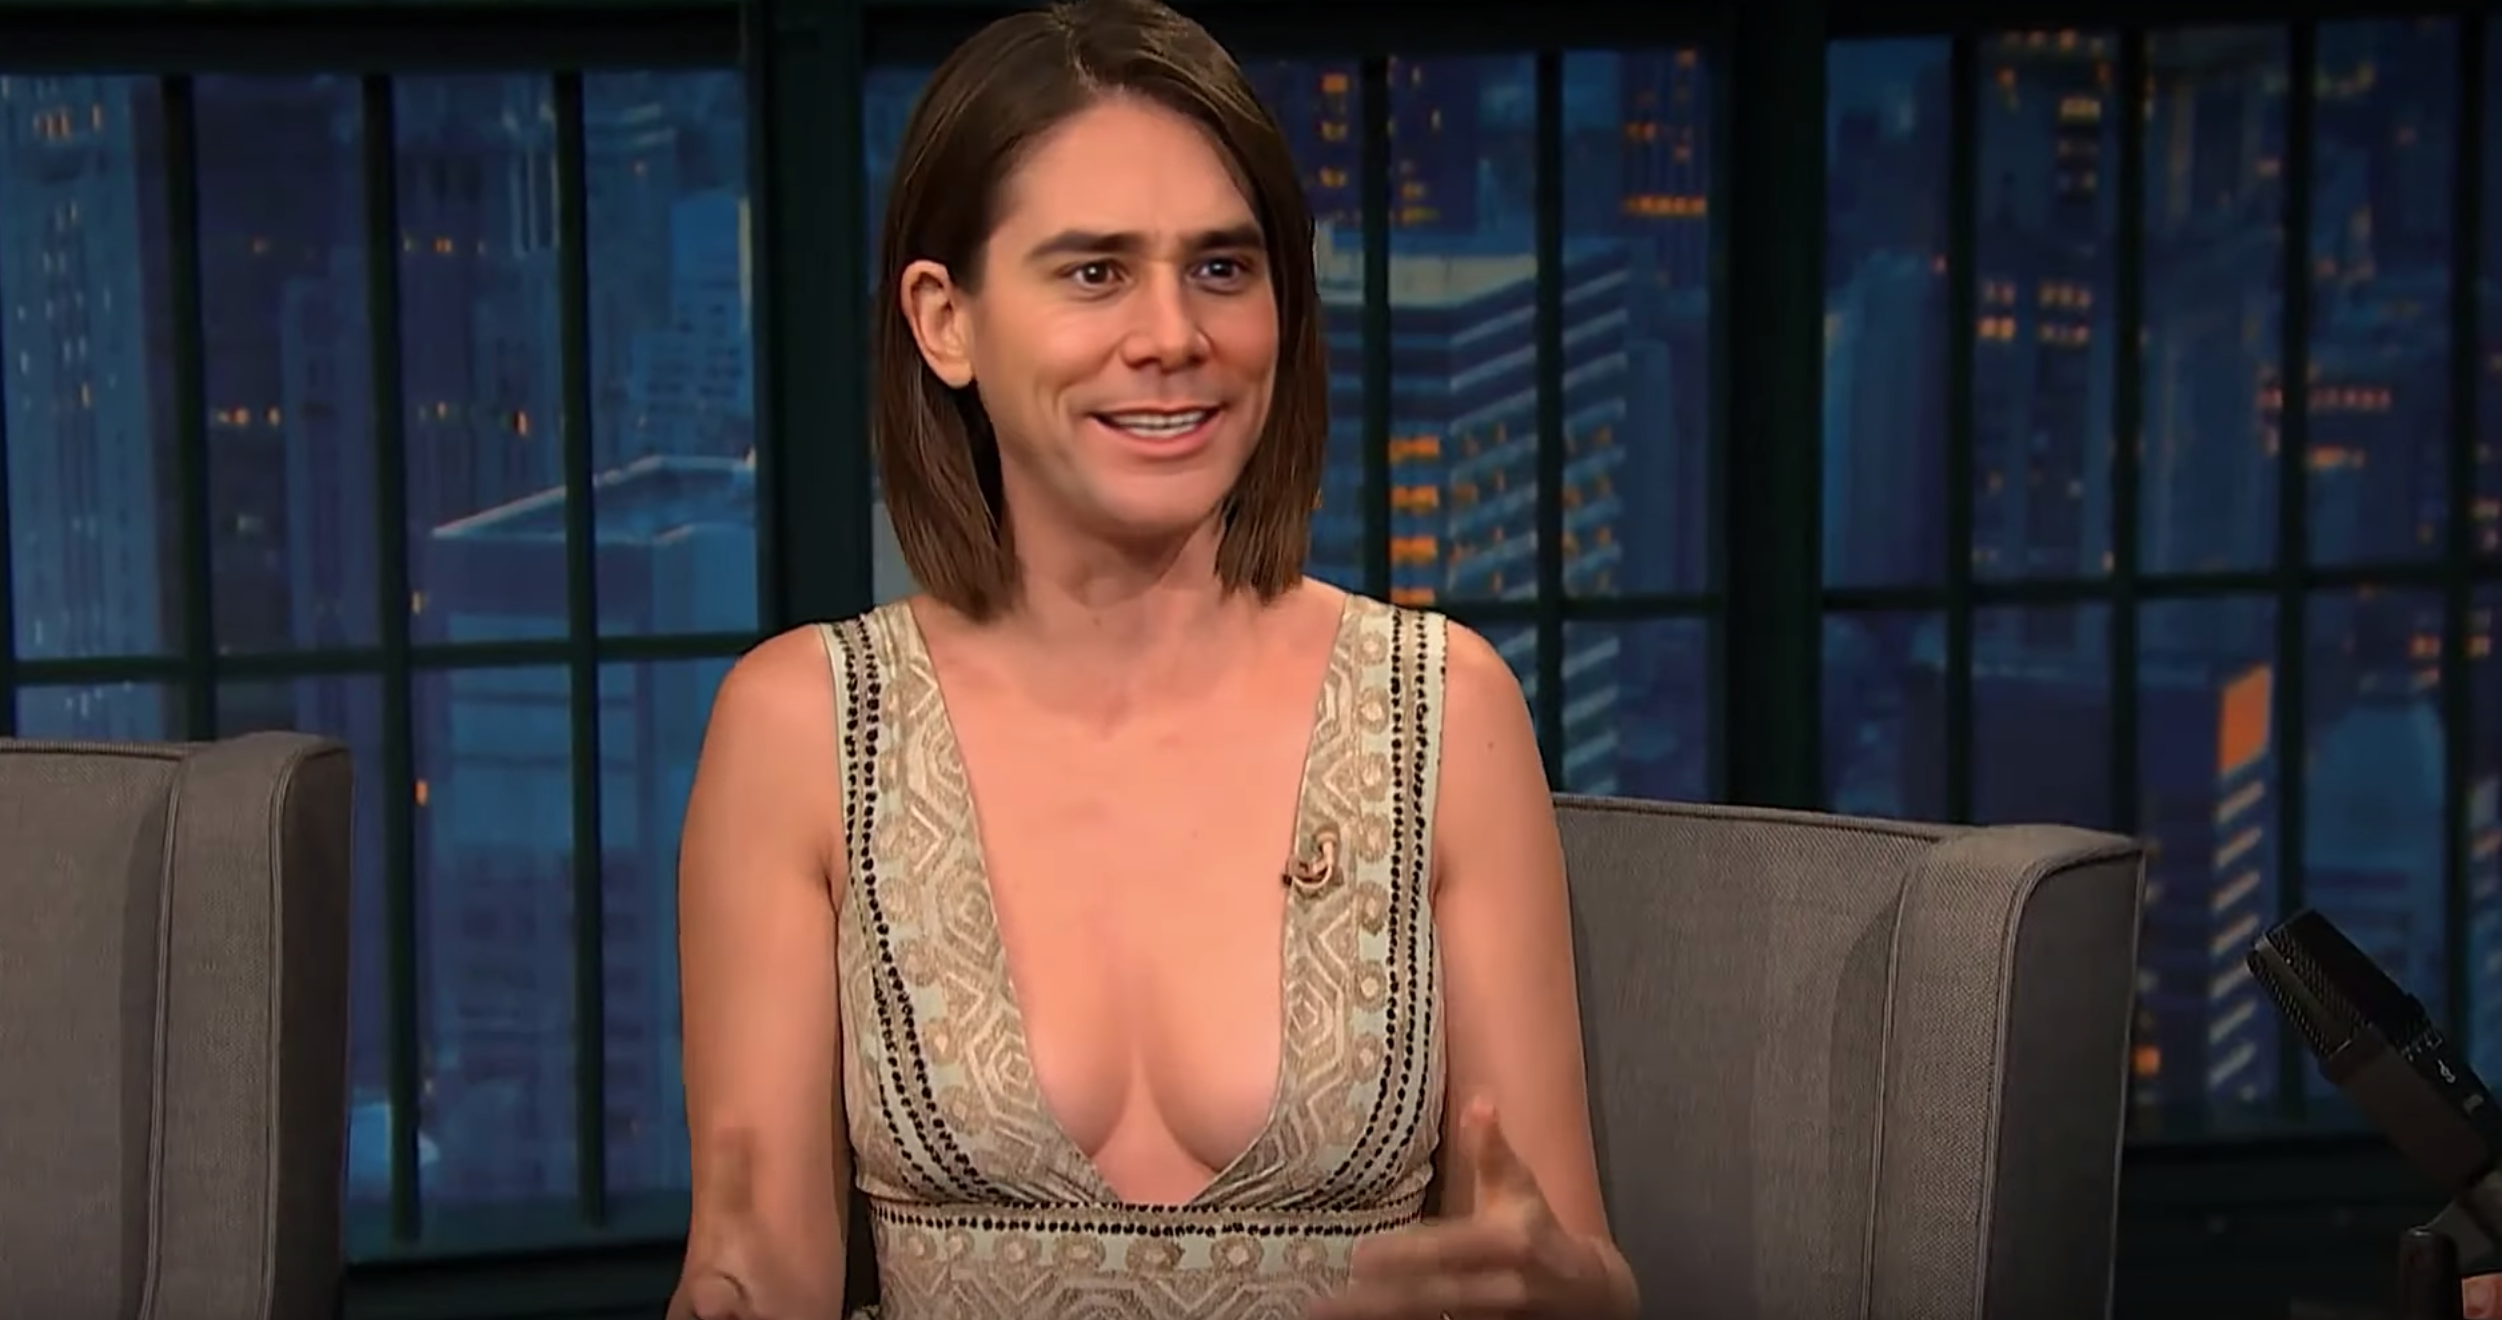 Allison Video Hot this deepfake video of alison brie with jim carrey's face is